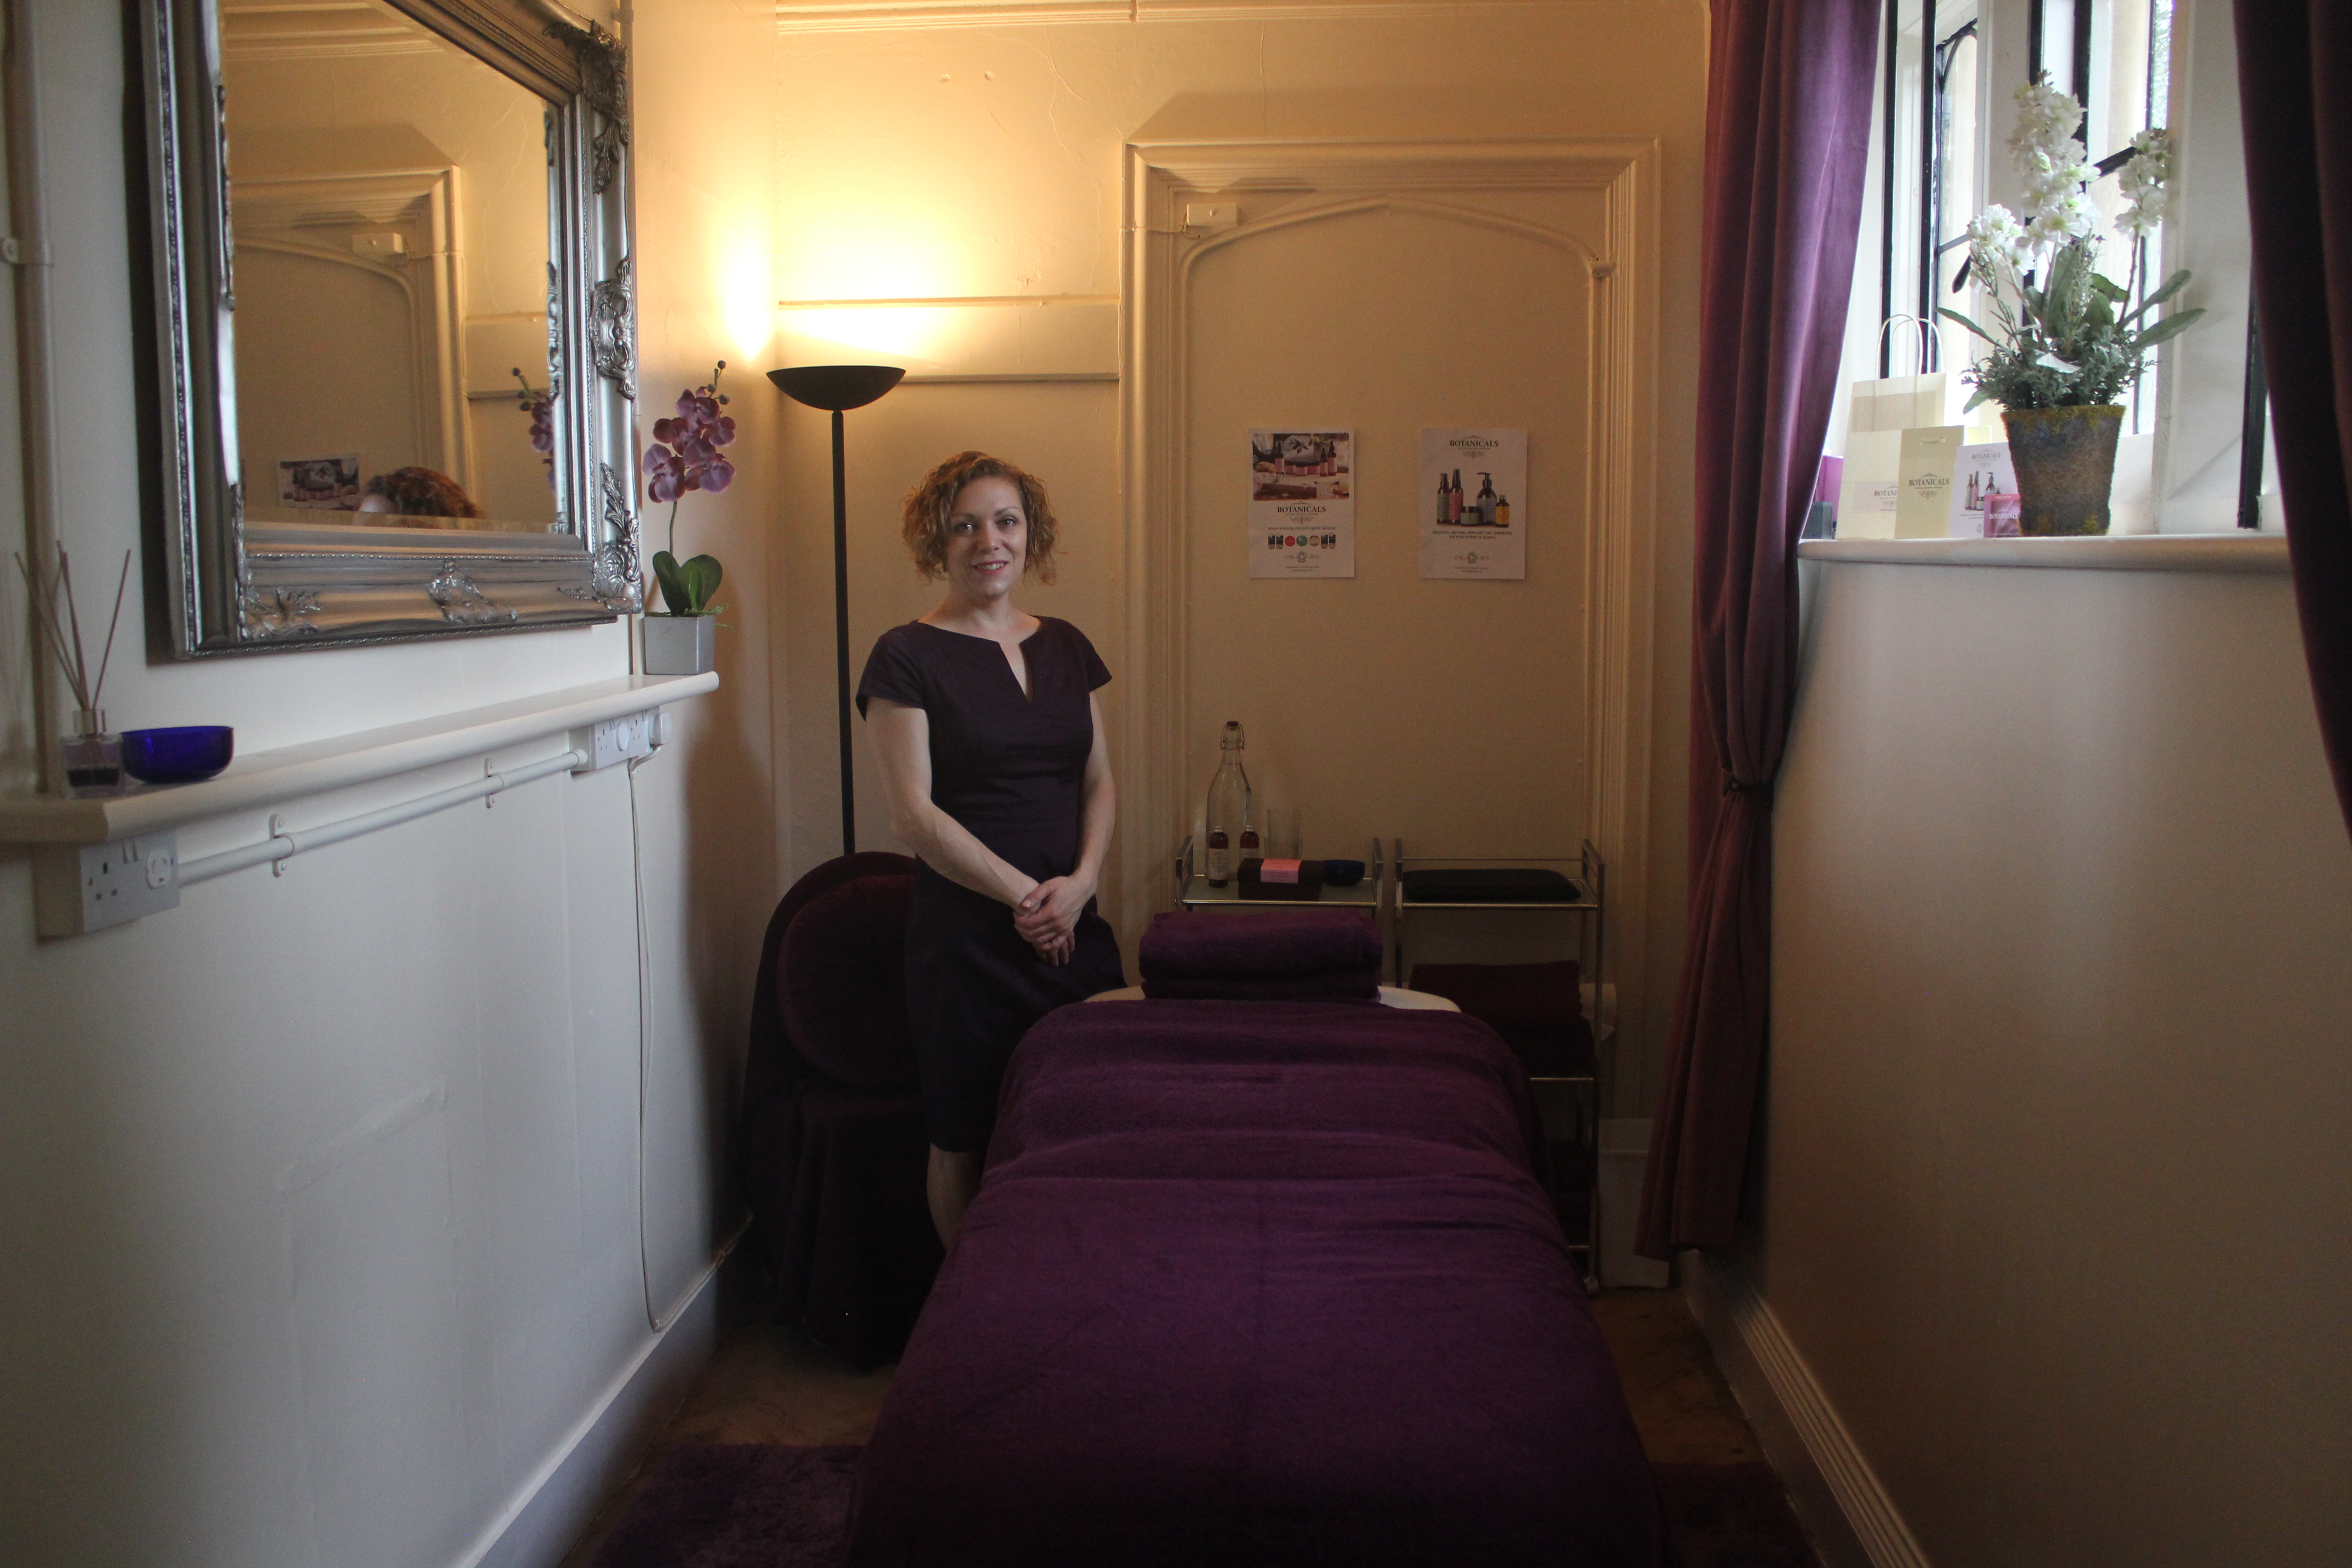 The Village Therapy Room